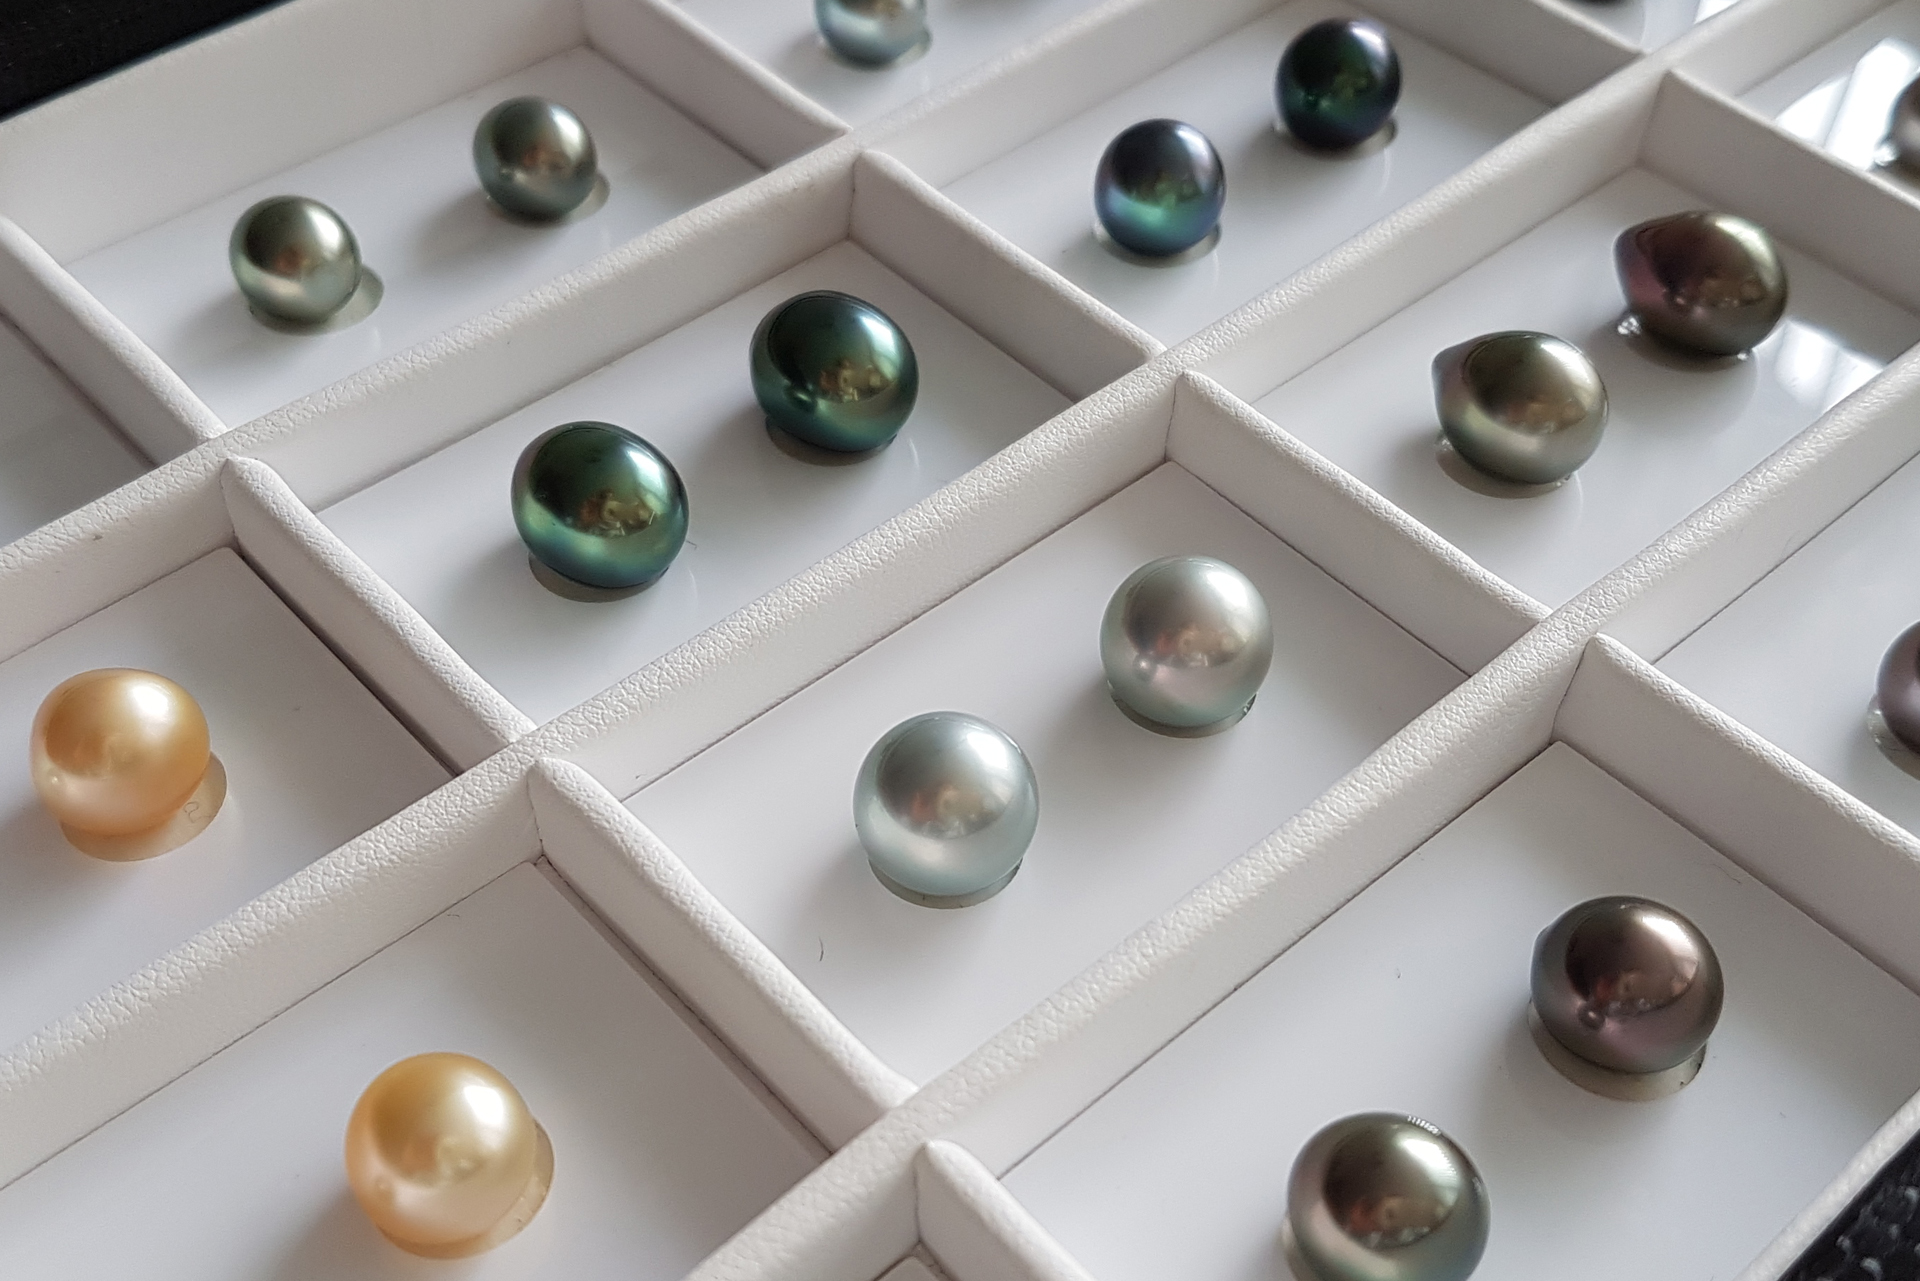 tahitian fine gilo ht creations jewelry manufacturer types pearls of products sea pearl south and importer